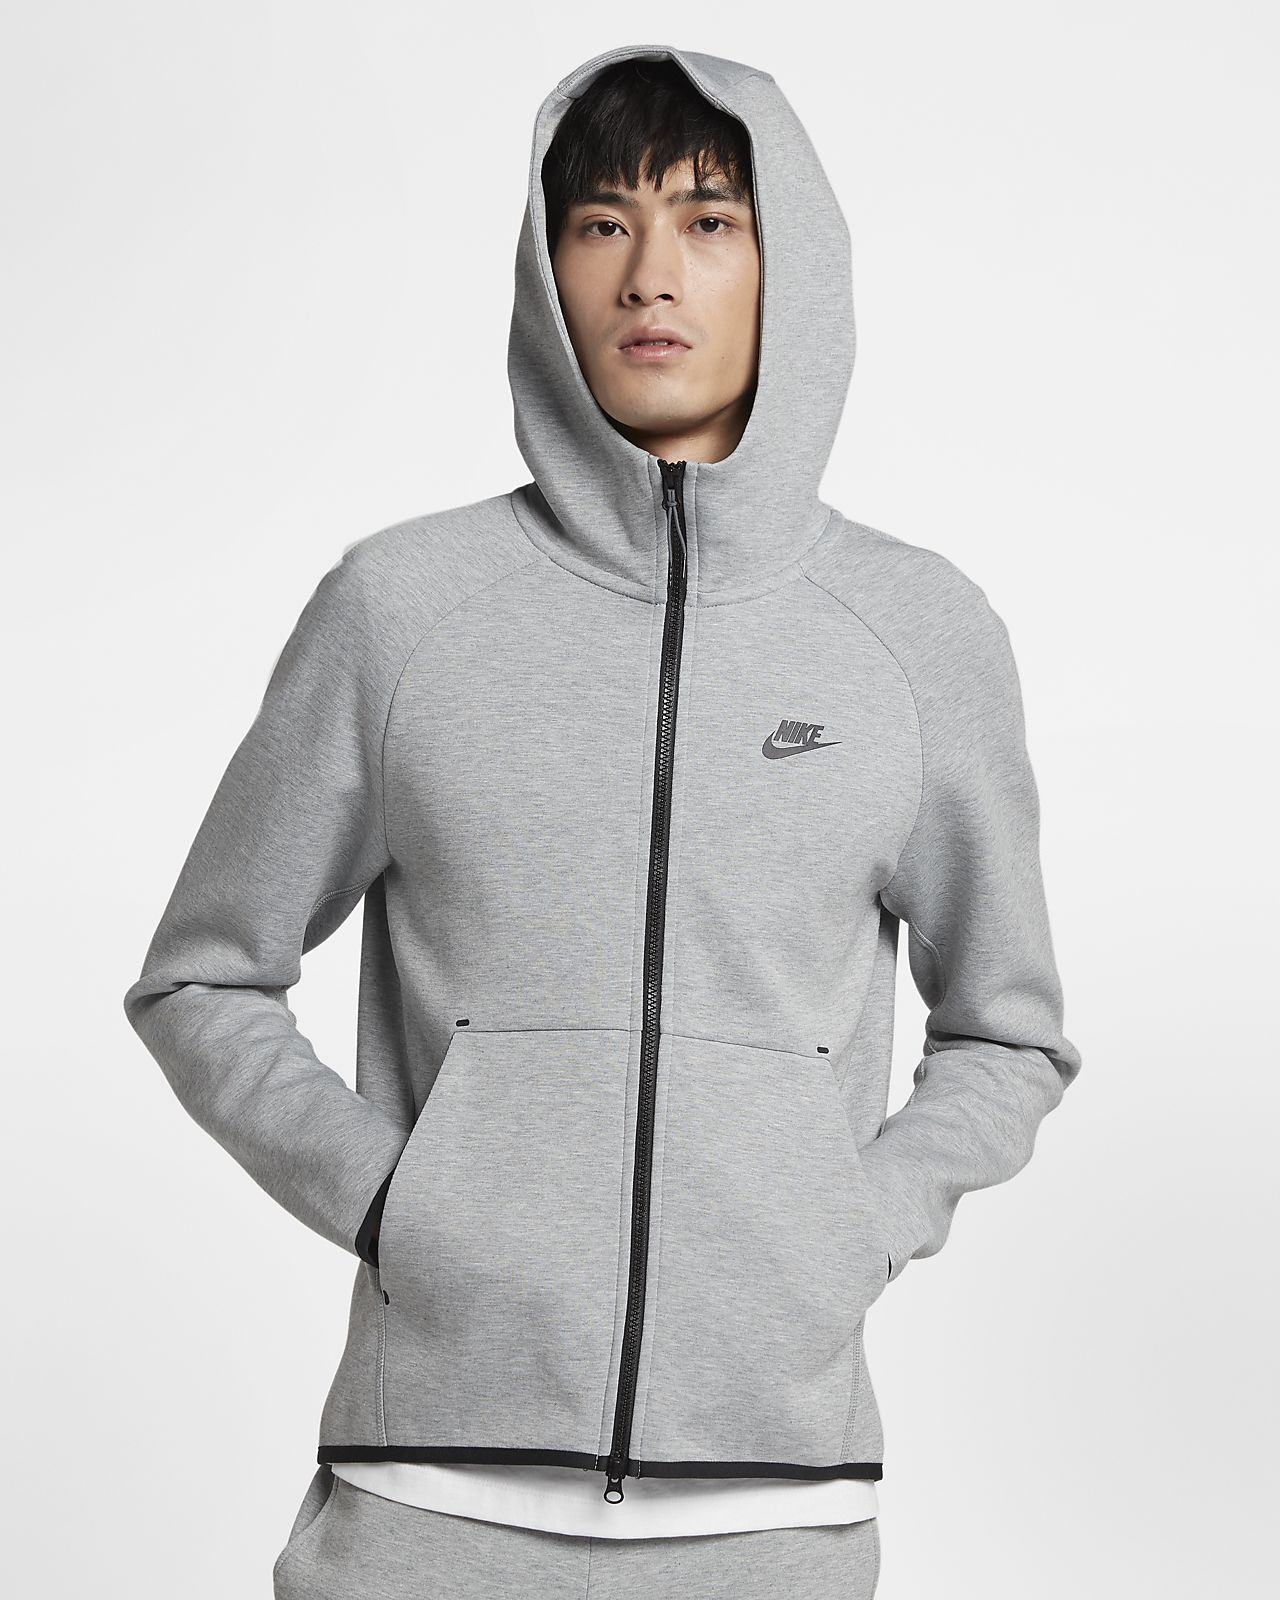 promesa Caballo envidia  felpa nike tech fleece uomo outlet 97a67 fa3ec